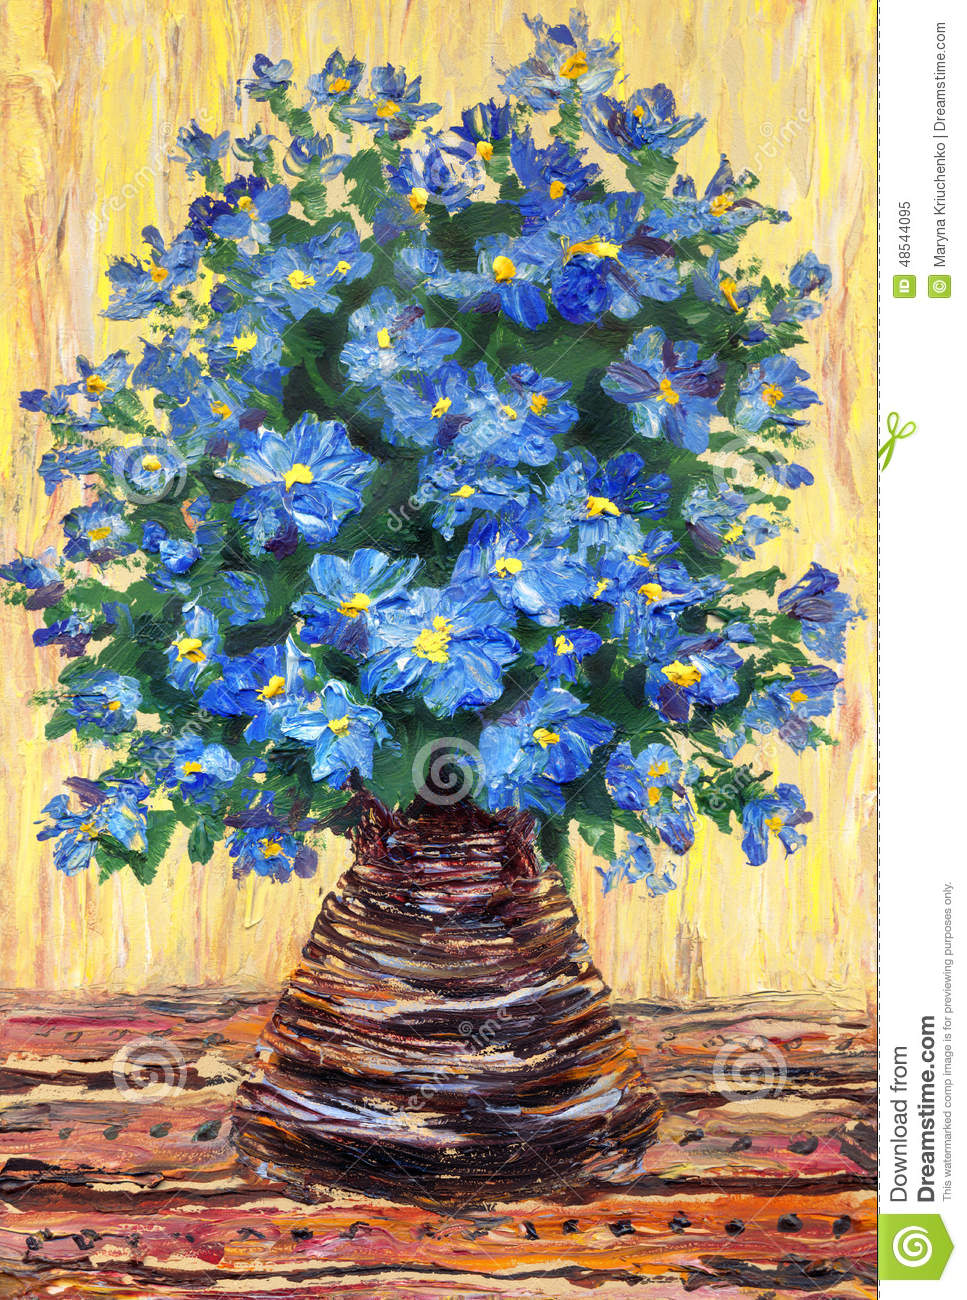 Still Life Oil Painting Bouquet Of Blue Flowers In A Vase